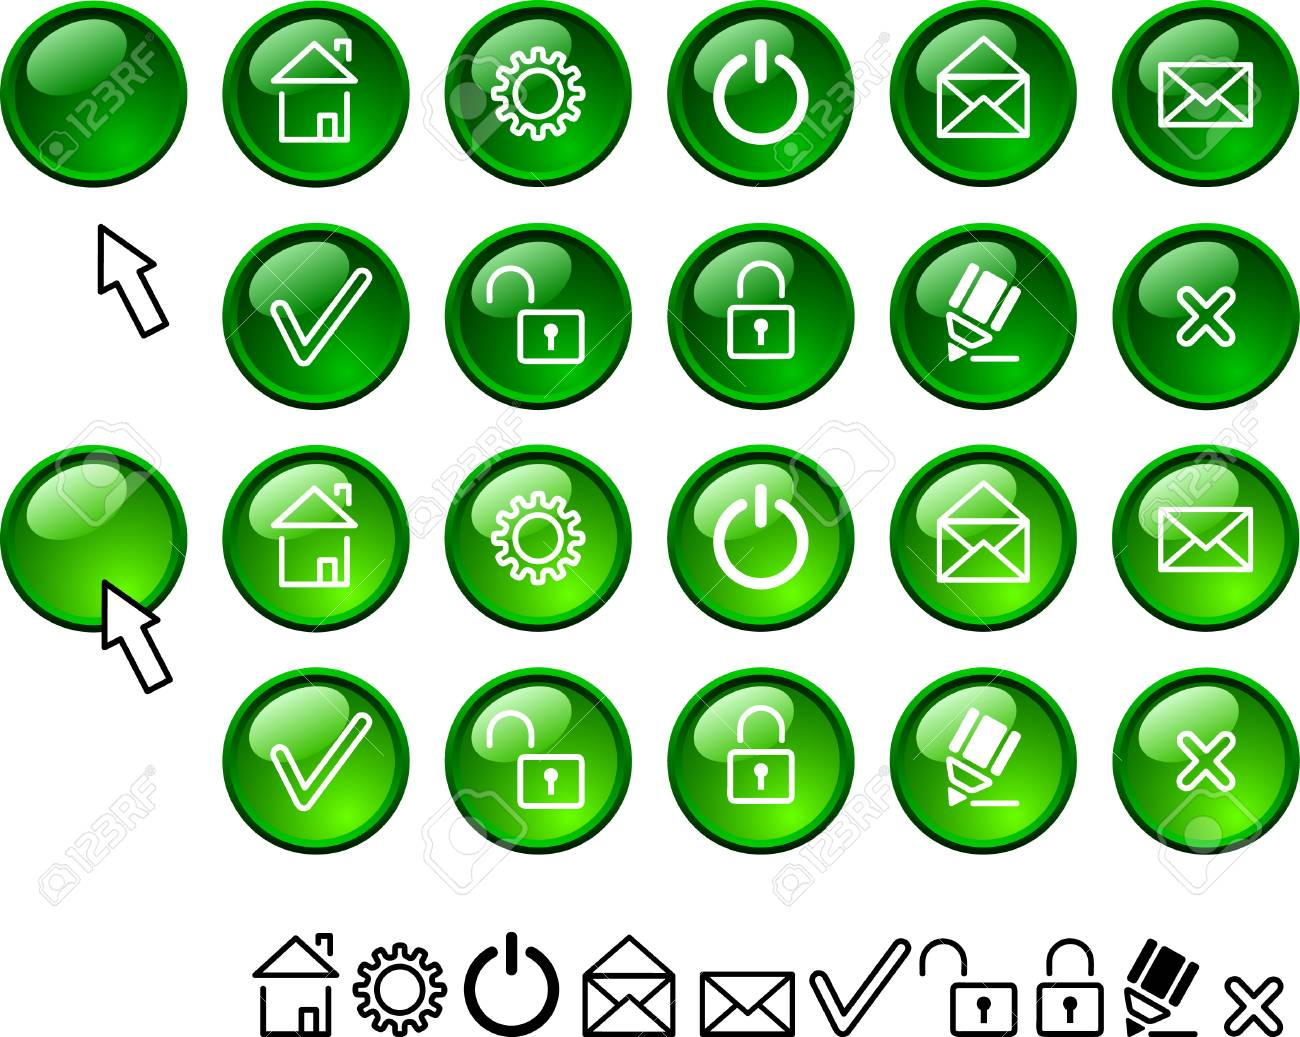 Collection of buttons. Vector illustration. Stock Vector - 2500575